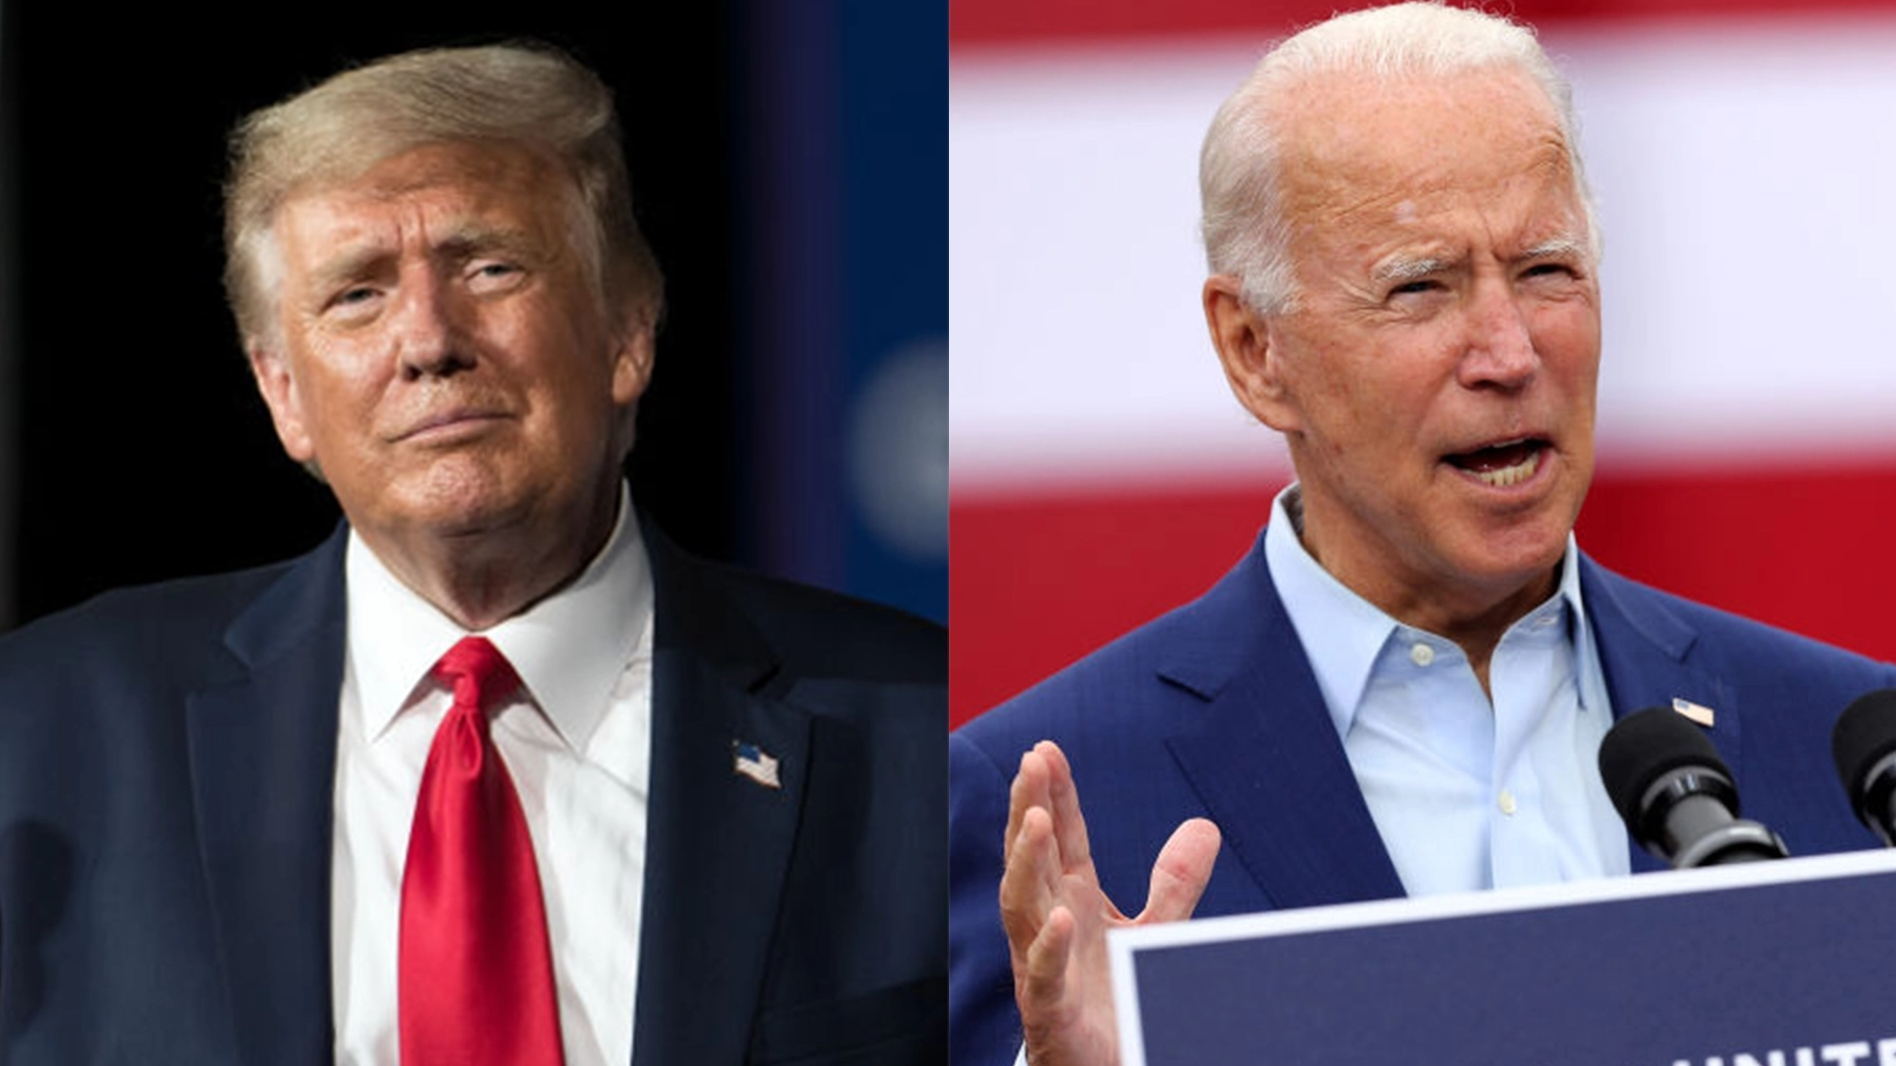 trump bidens upcoming debate in dueling town hall meetings instead of face to face